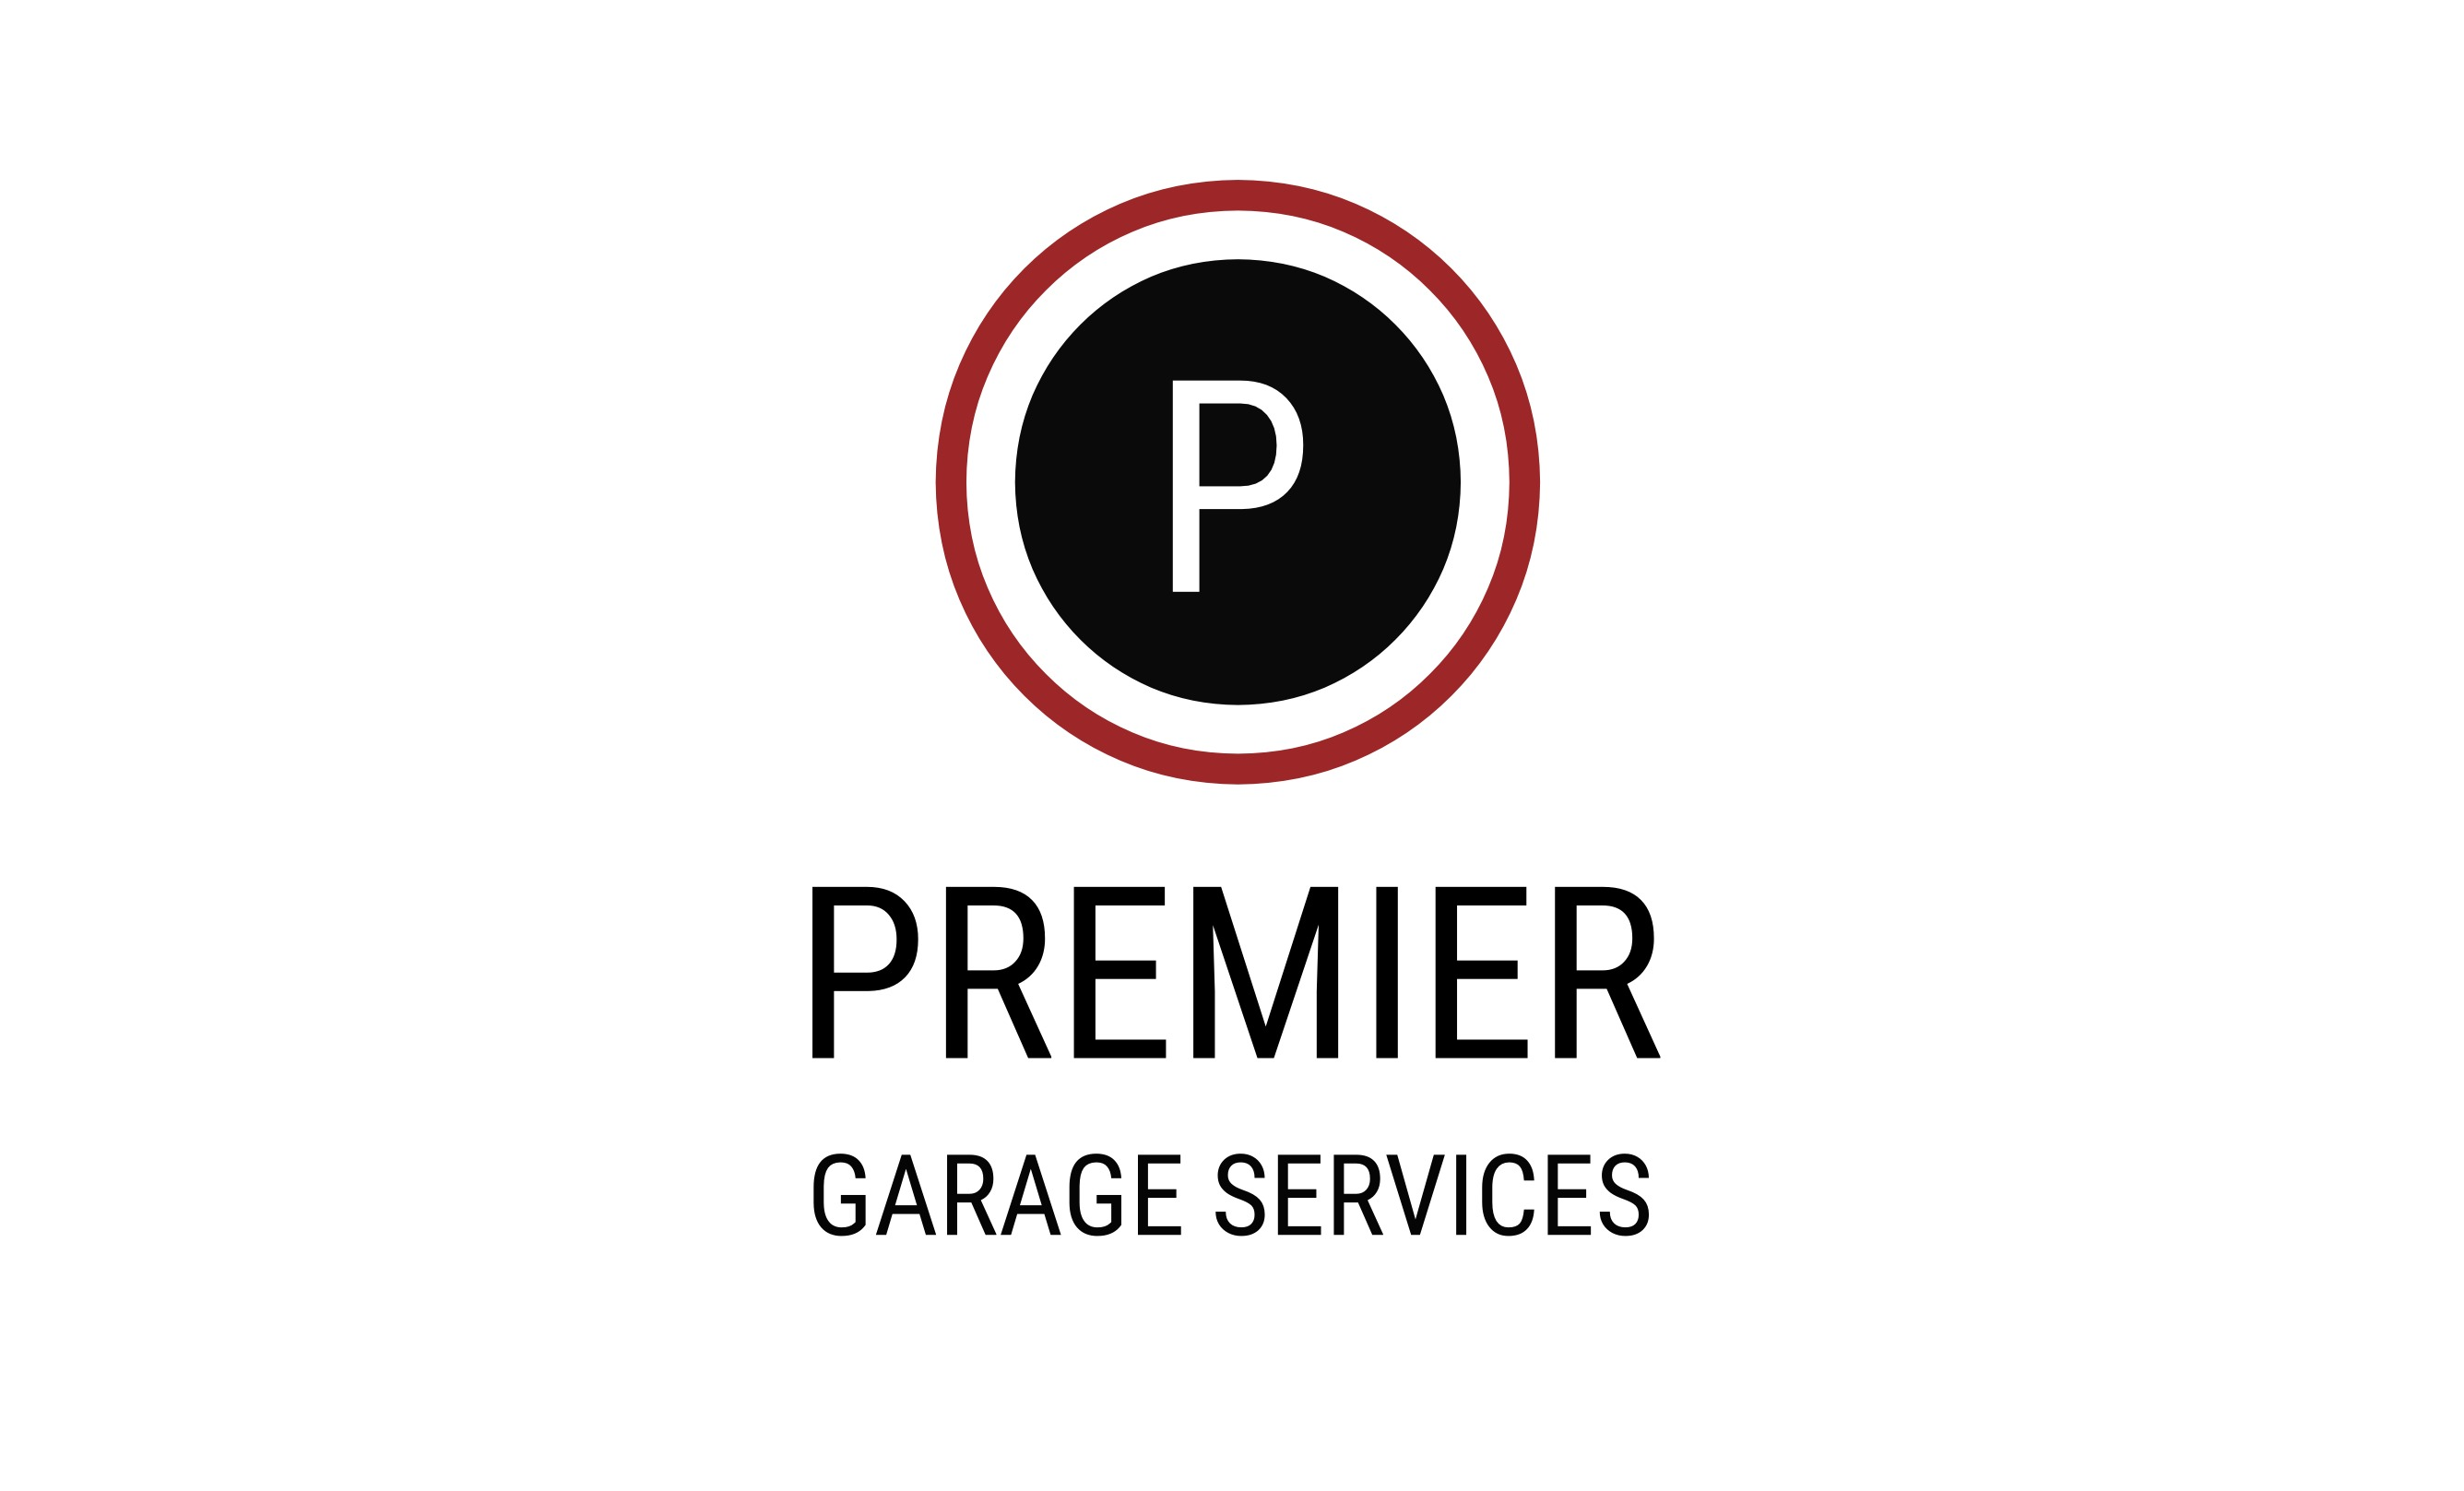 Premier Garage Services (Previously formula 1 MOT Centre)